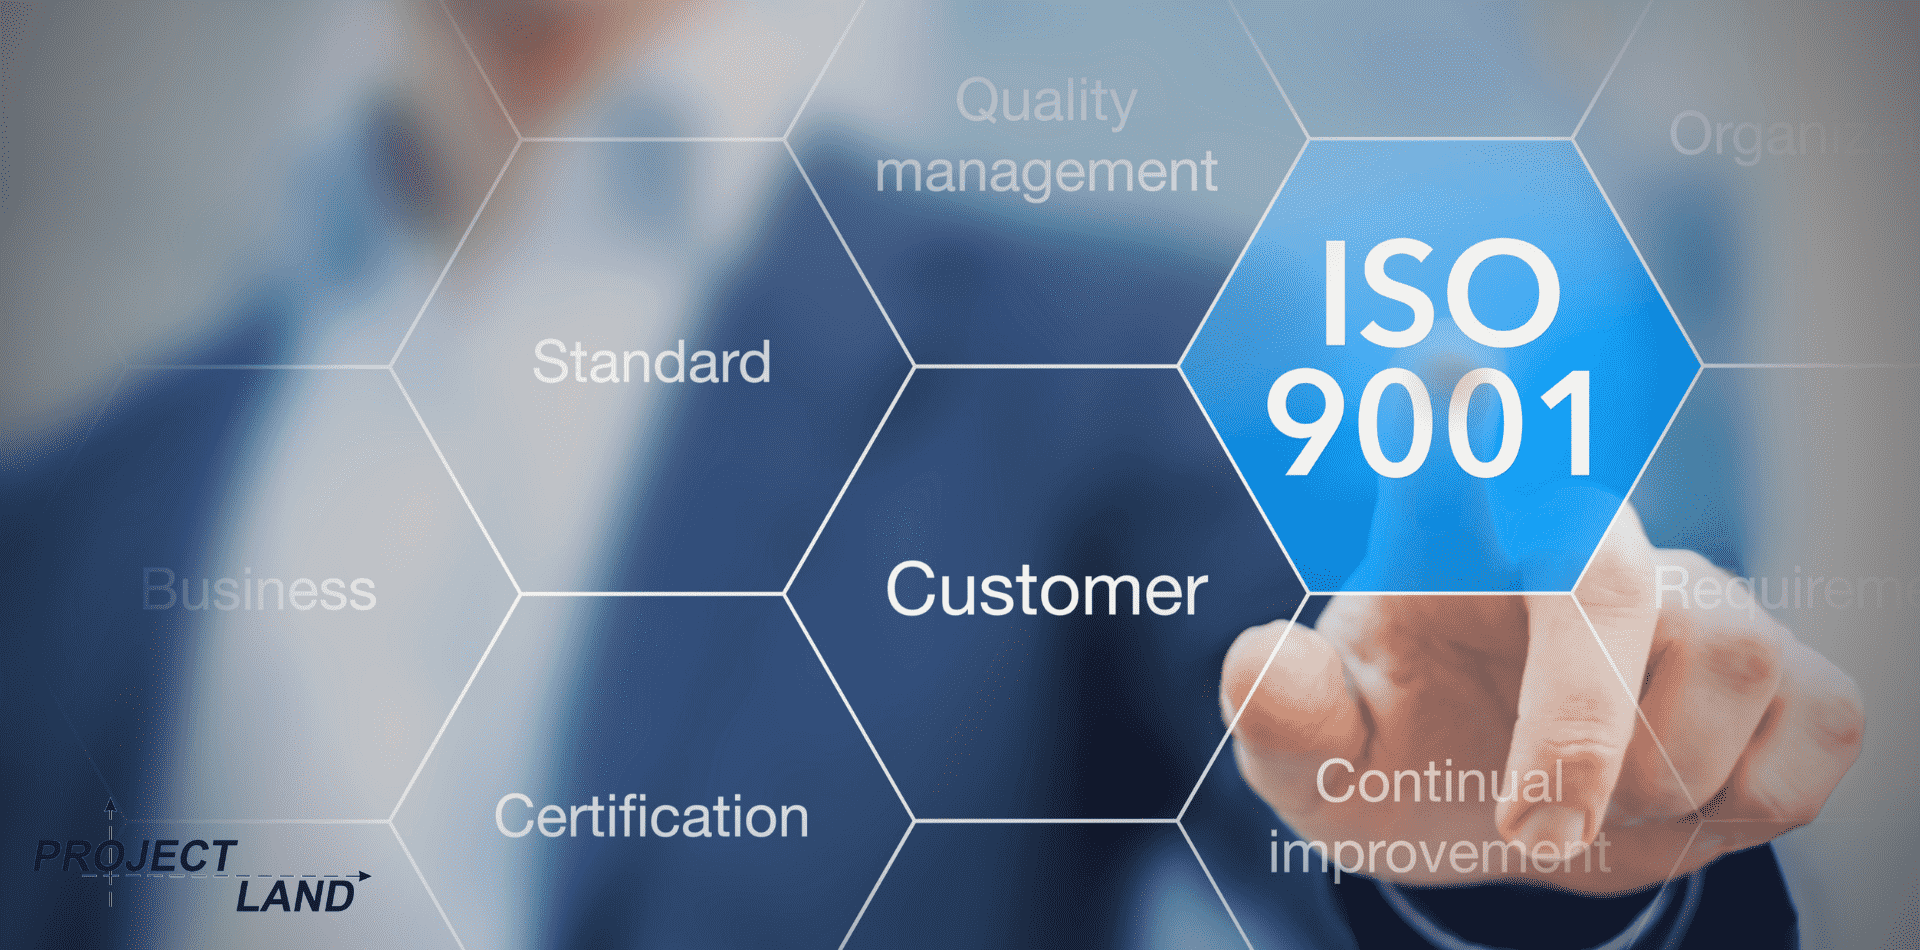 Why_is_9001_ISO_standard_–_QUALITY_MANAGEMENT_SYSTEM_important_for_successful_business?